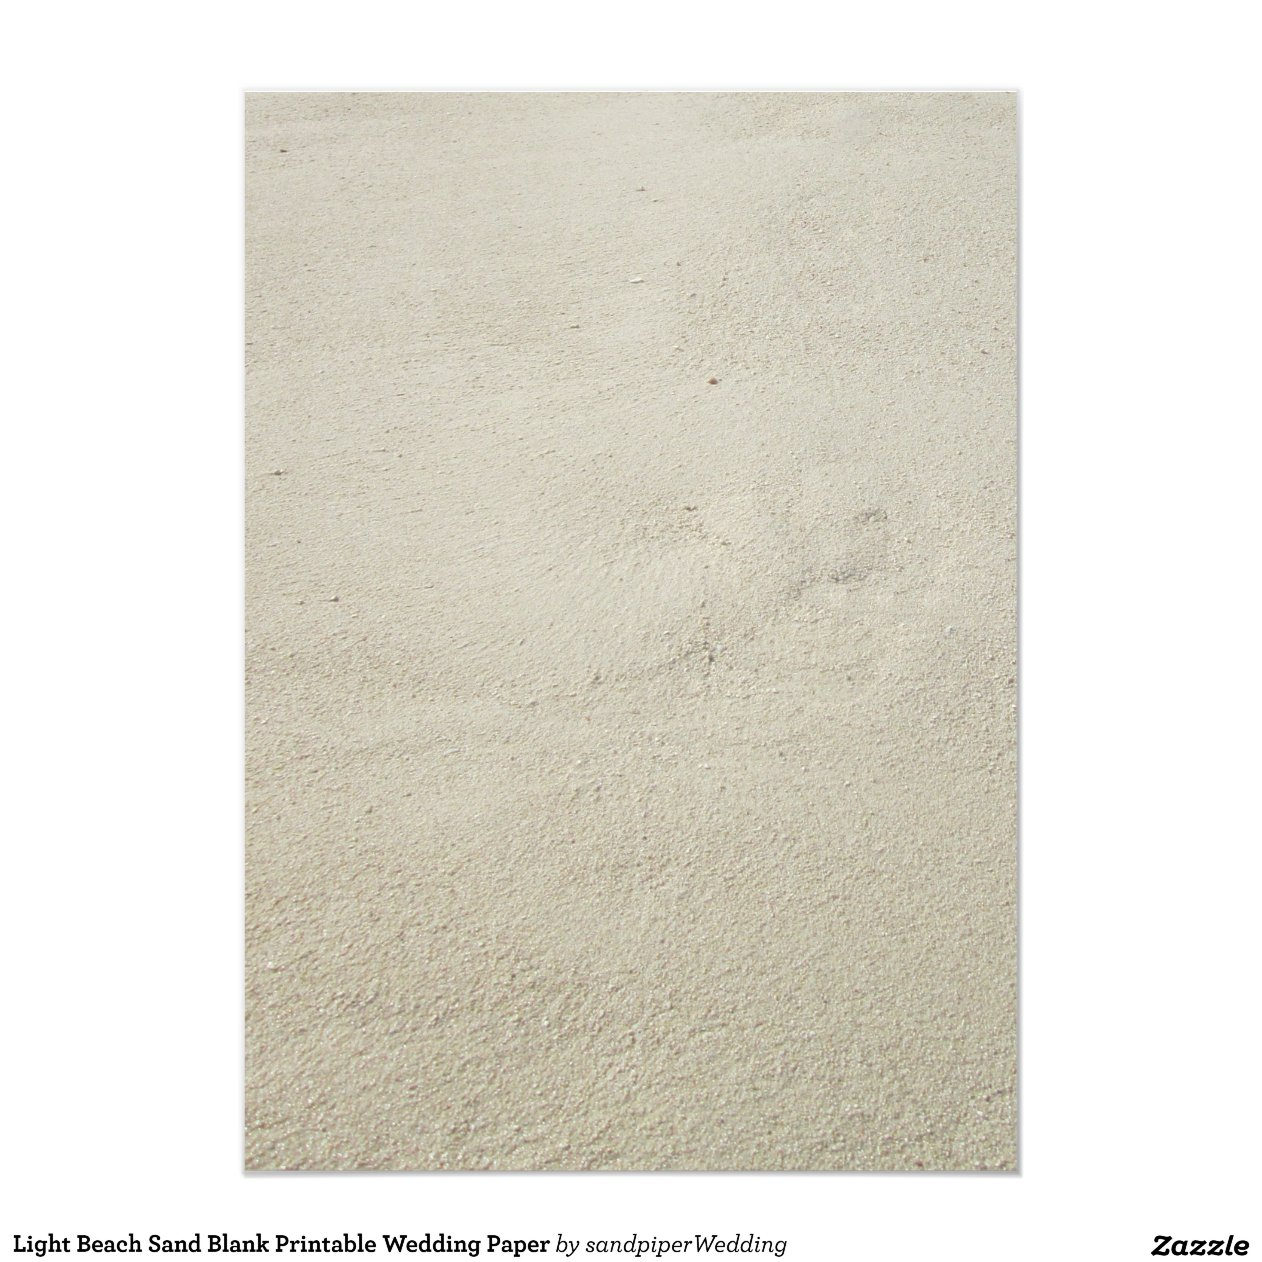 Light Beach Sand Blank Printable Wedding Paper 5x7 Paper. South Indian Wedding Invitation Wording For Friends Card. Wedding Attire For The Groom. Our Deal Wedding Planner. Wedding Photographer Utica Ny. Wedding Hairstyles Plait. Indian Wedding Bridal Party. Wedding Gift Ideas For Your Parents. Wedding Place Name Cards Uk